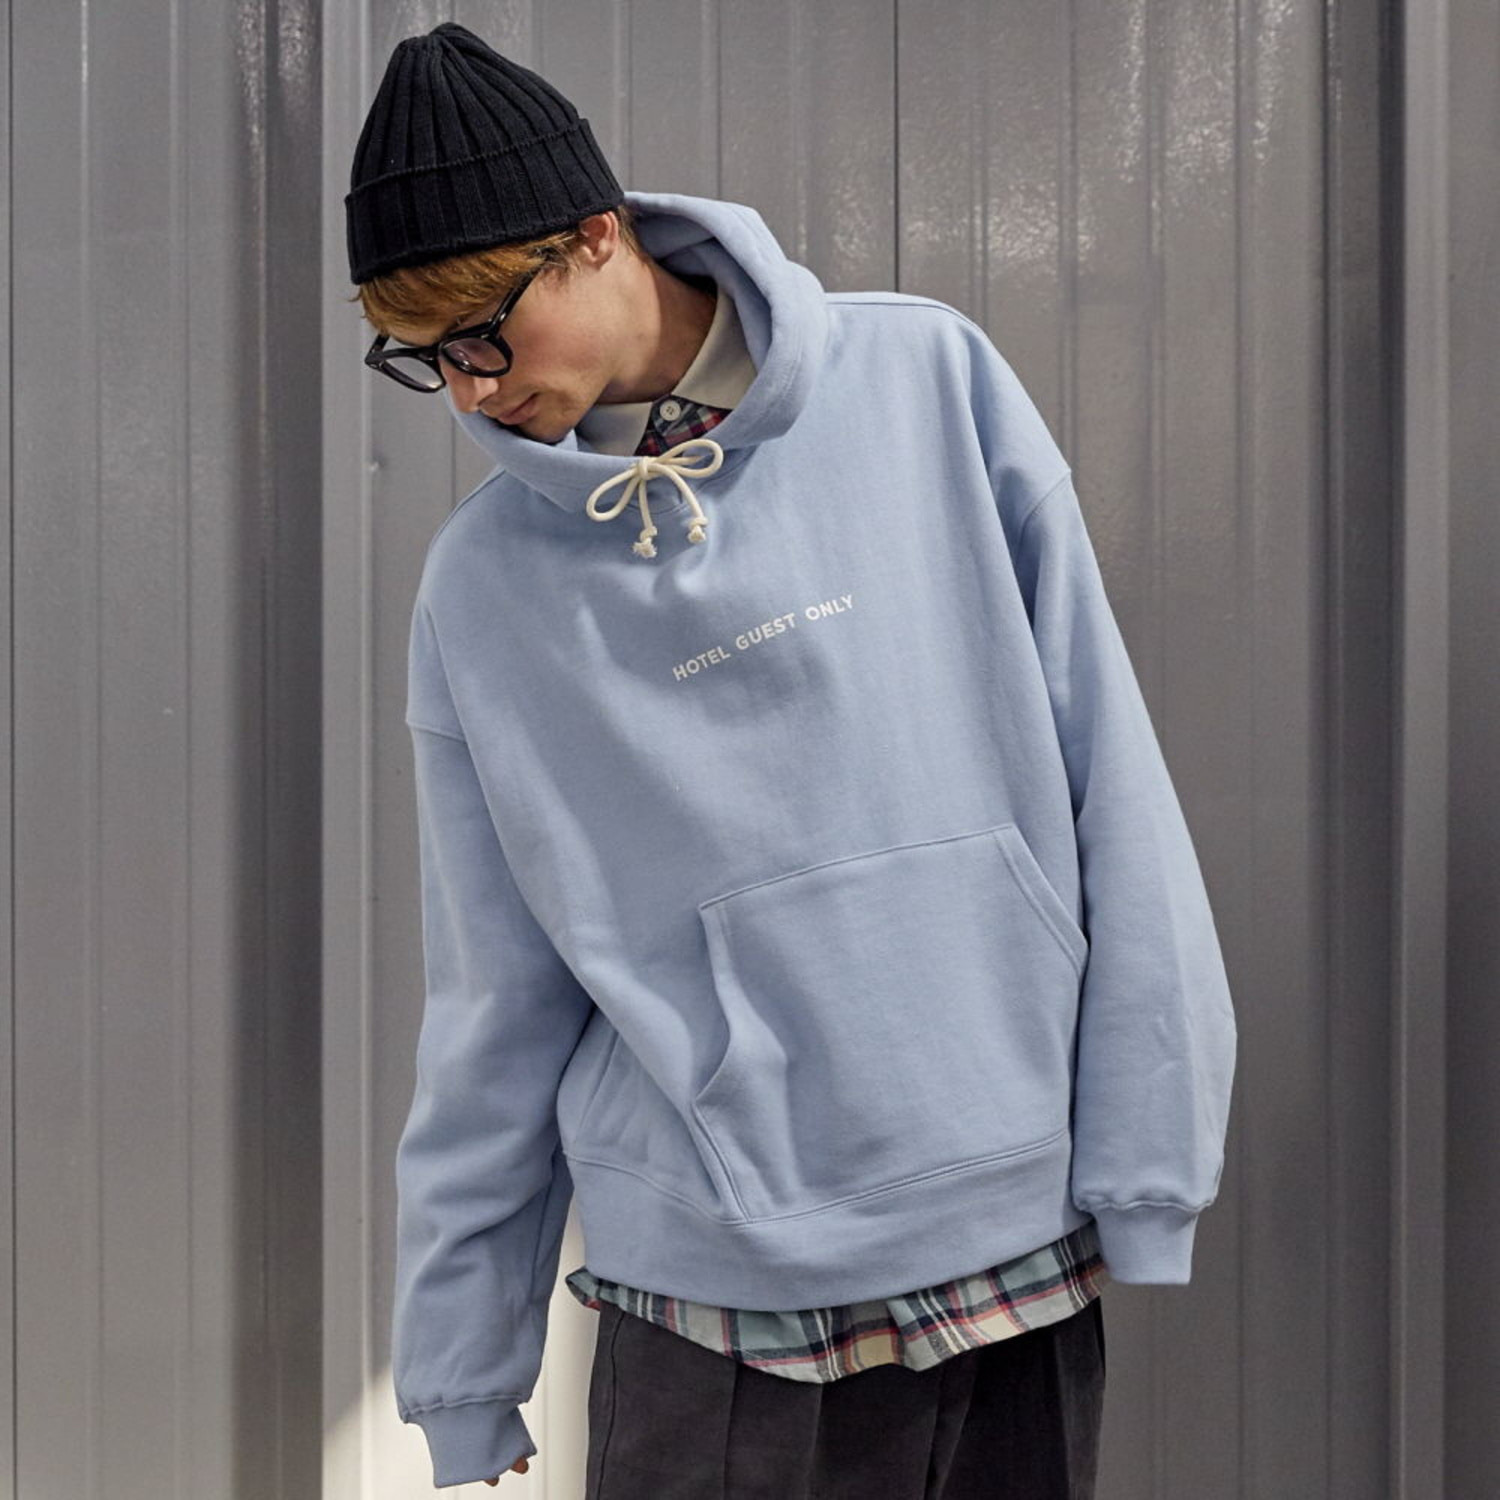 HOTEL GUEST ONLY HEAVY WEIGHT OVERSIZED HOODIE (SERENITY)